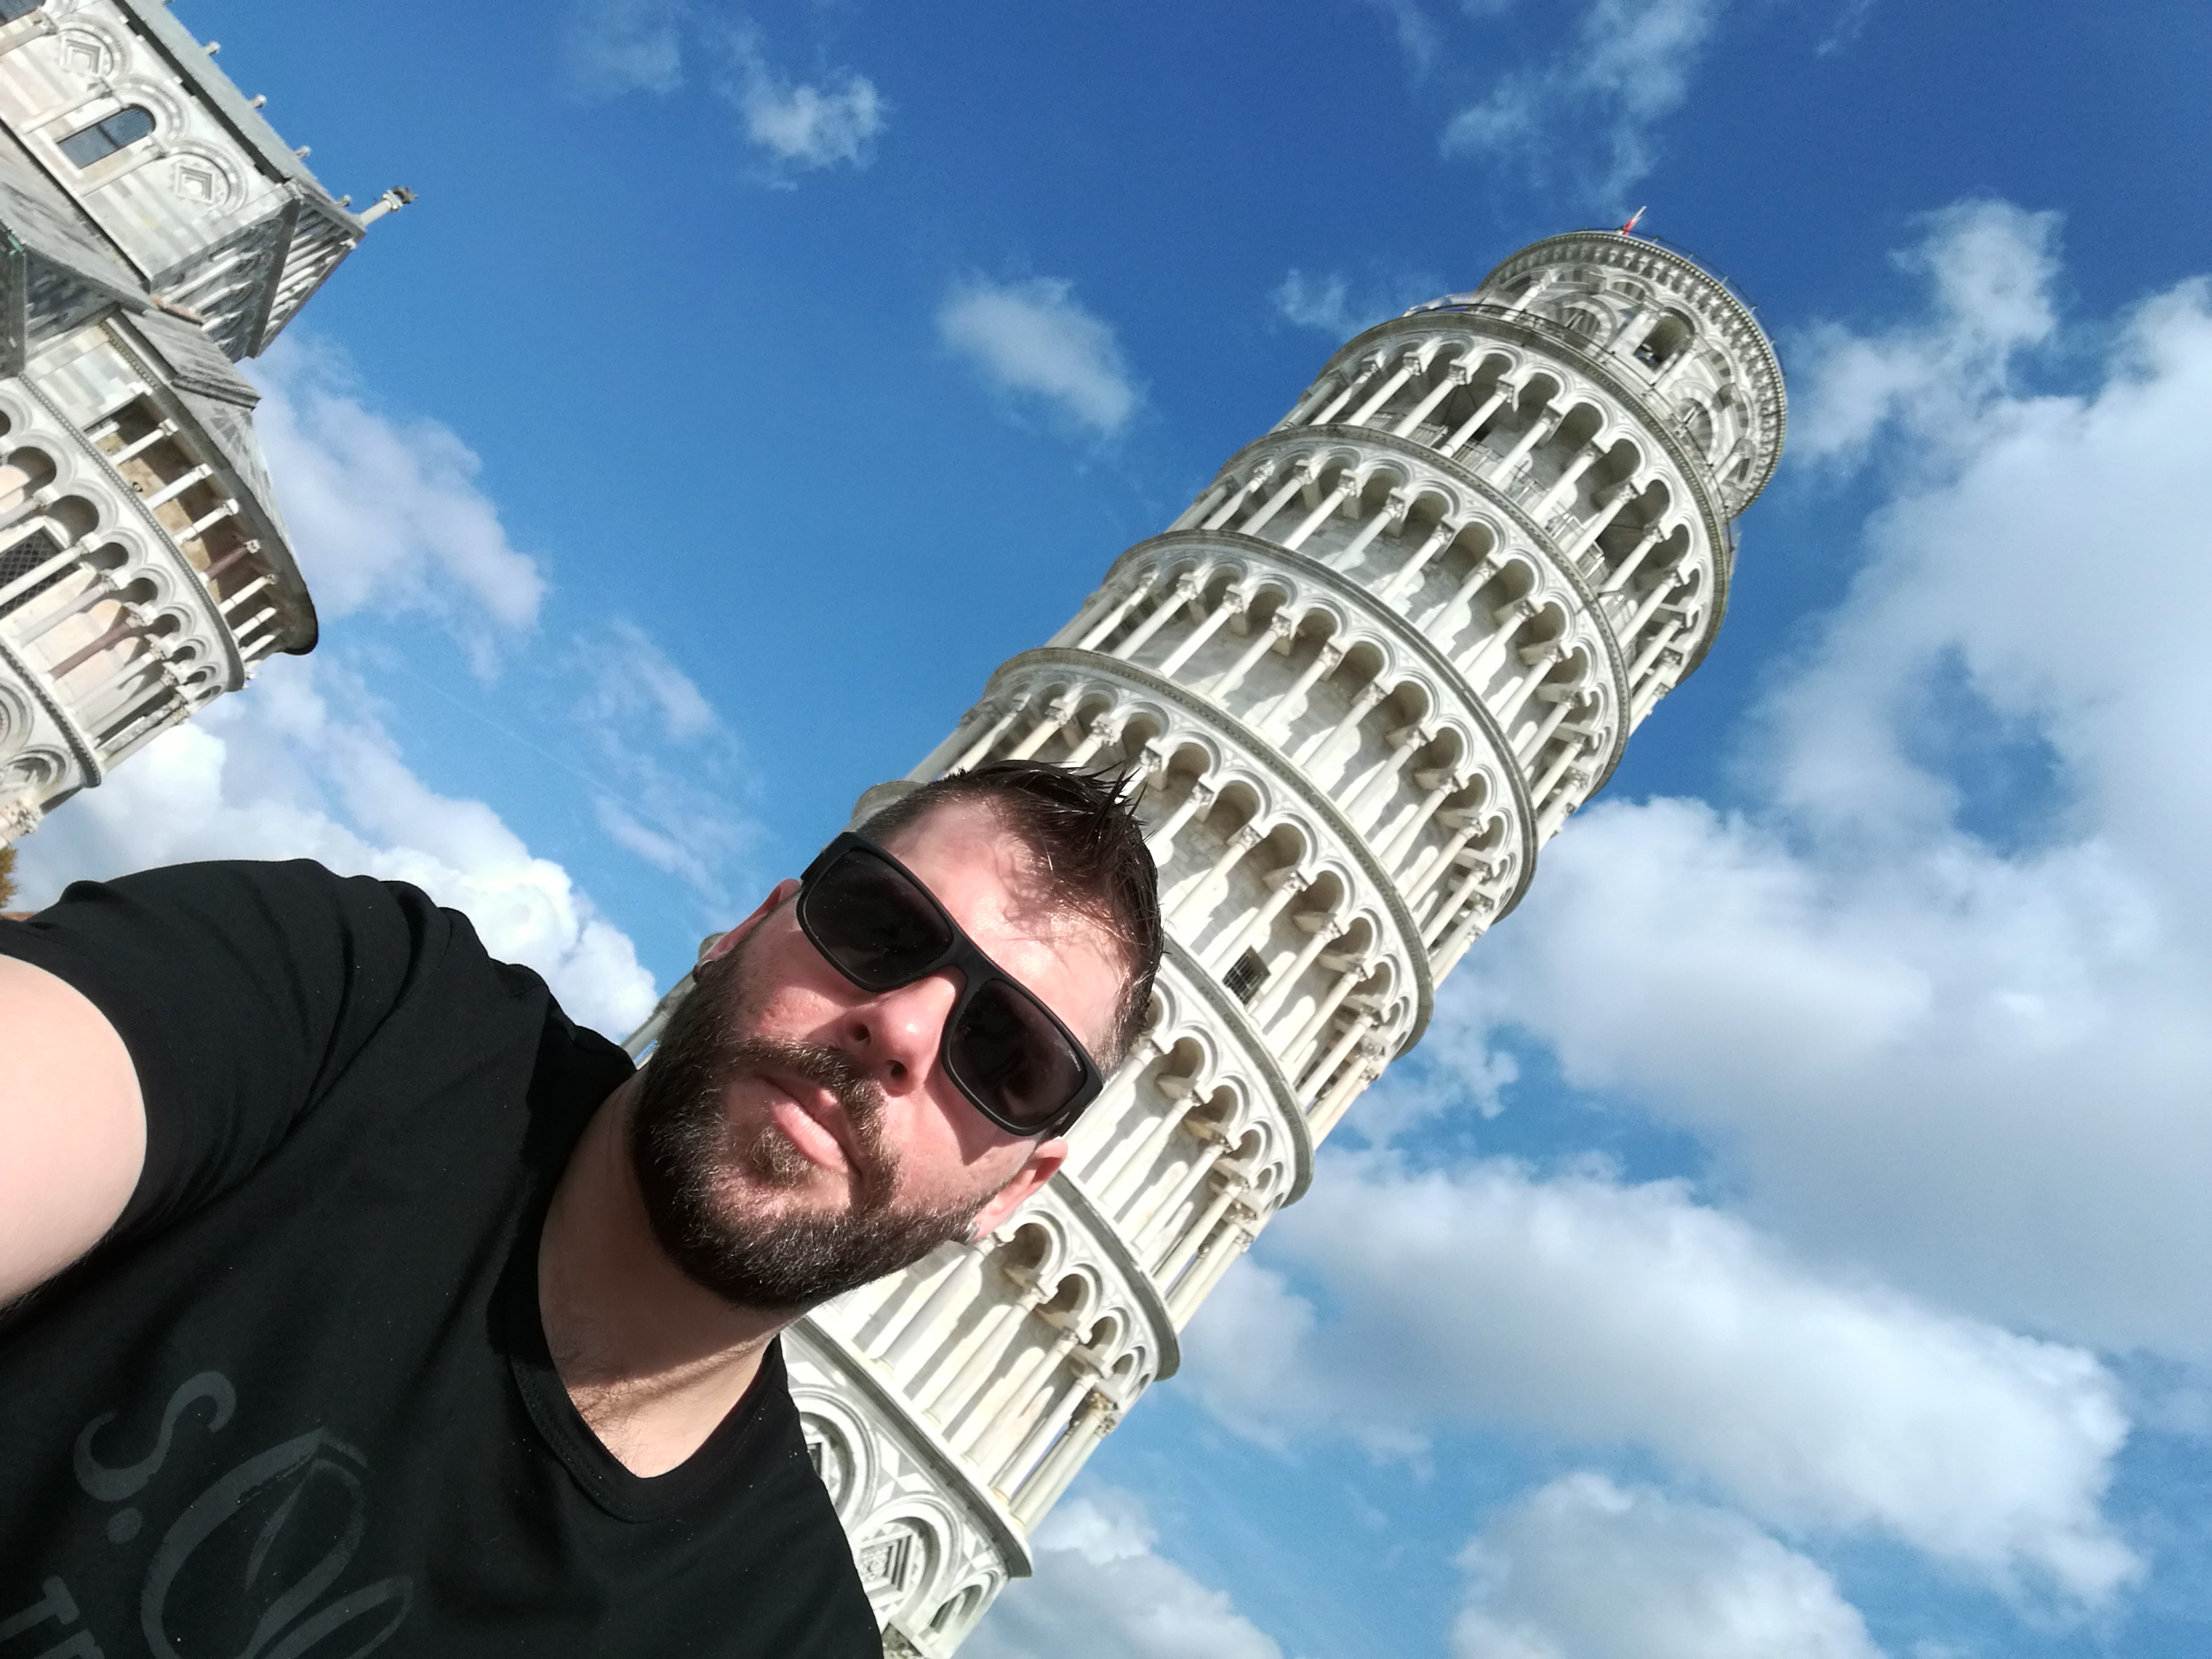 Selfie with tower